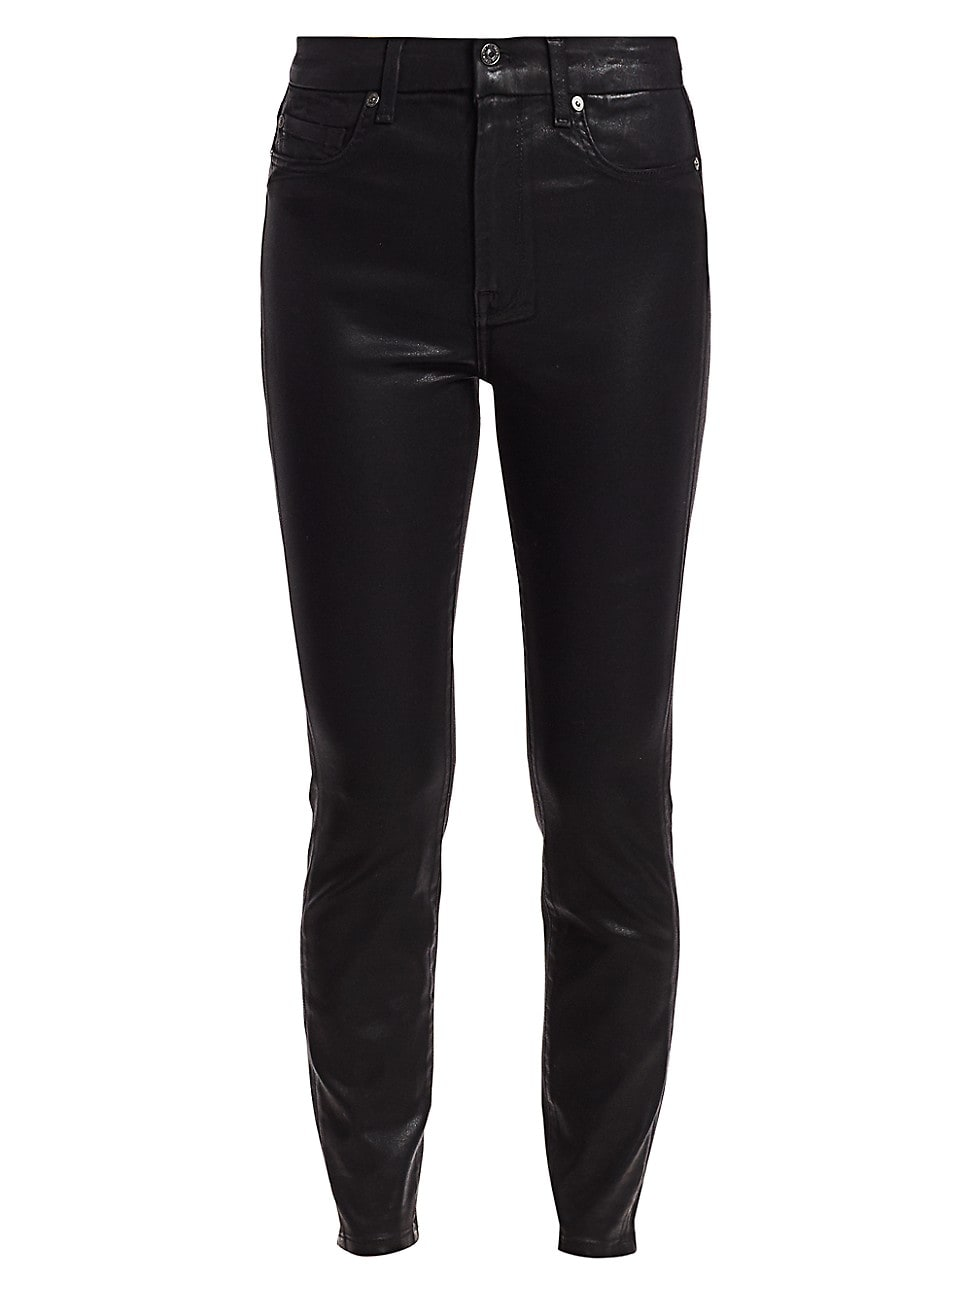 7 For All Mankind High-rise Ankle Skinny Coated Jeans In Black Coated